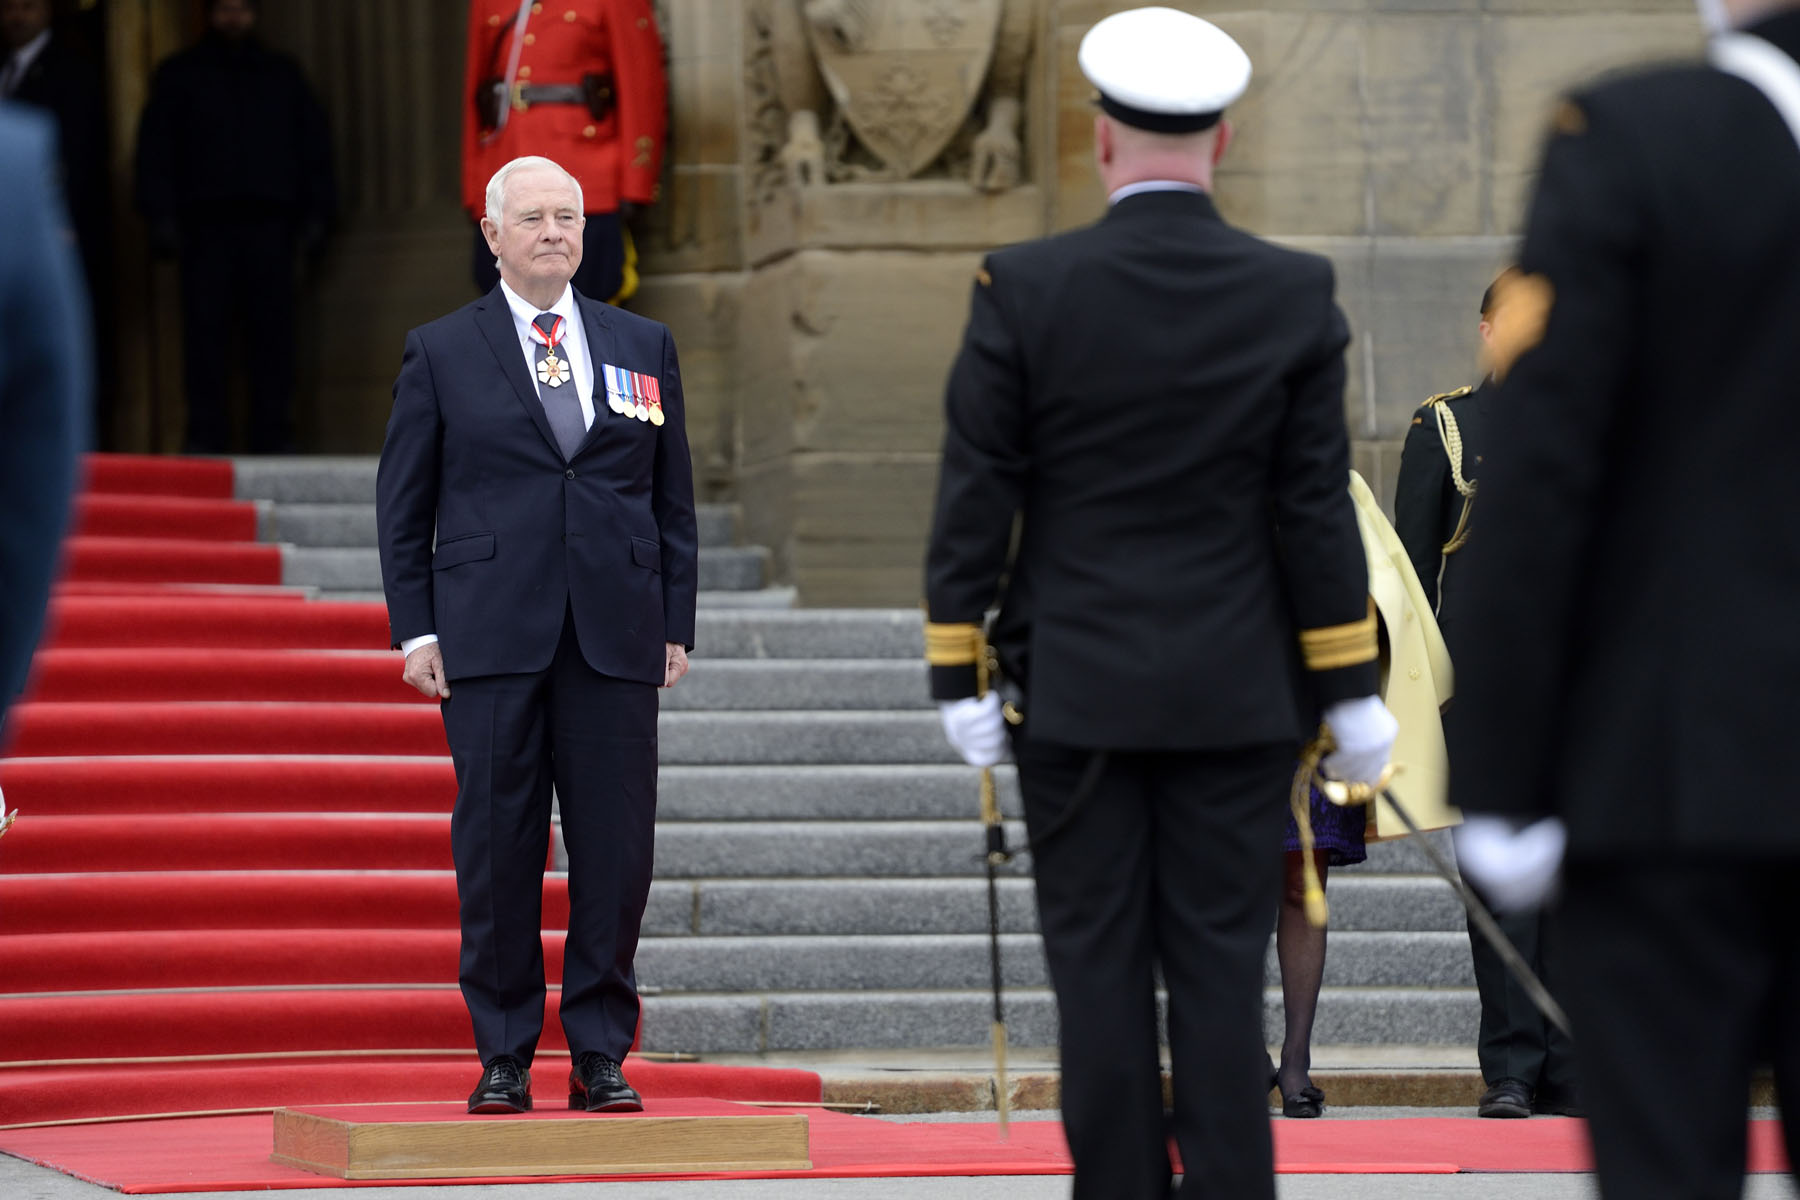 His Excellency the Right Honourable David Johnston, Governor General of Canada, delivered the Speech from the Throne to open the first session of the 42nd Parliament of Canada on December 4, 2015. Upon his arrival on Parliament Hill, in Ottawa, he received the Royal salute.